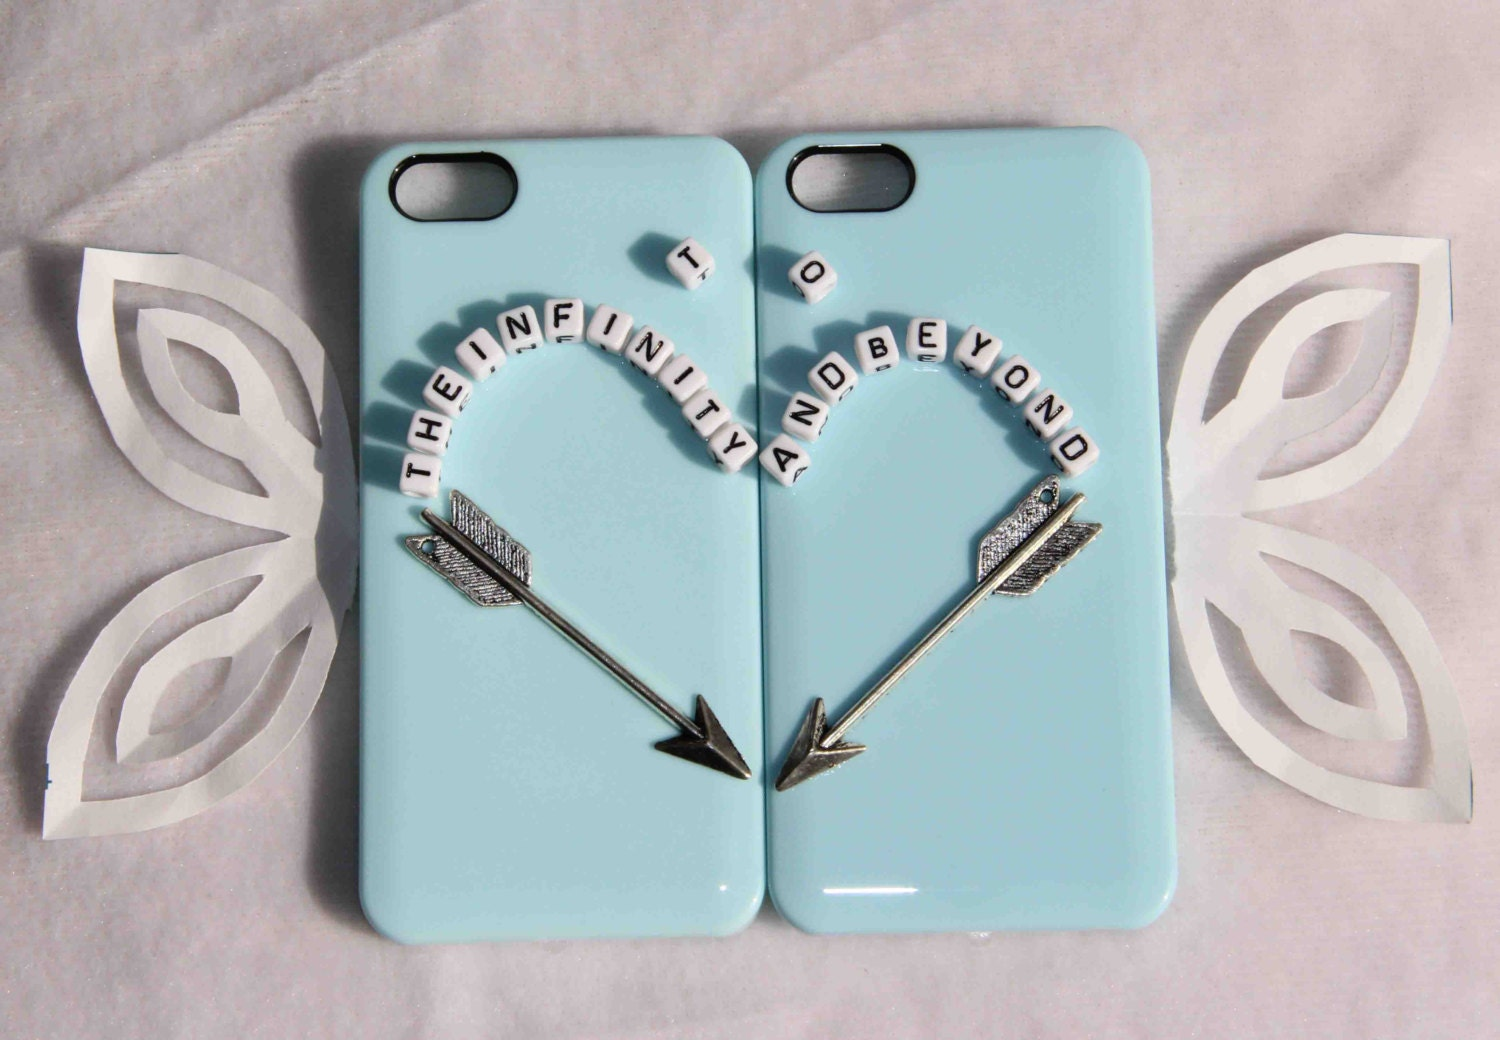 Matching Iphone Cases For Sisters phrase in the cases is theMatching Iphone Cases For Sisters